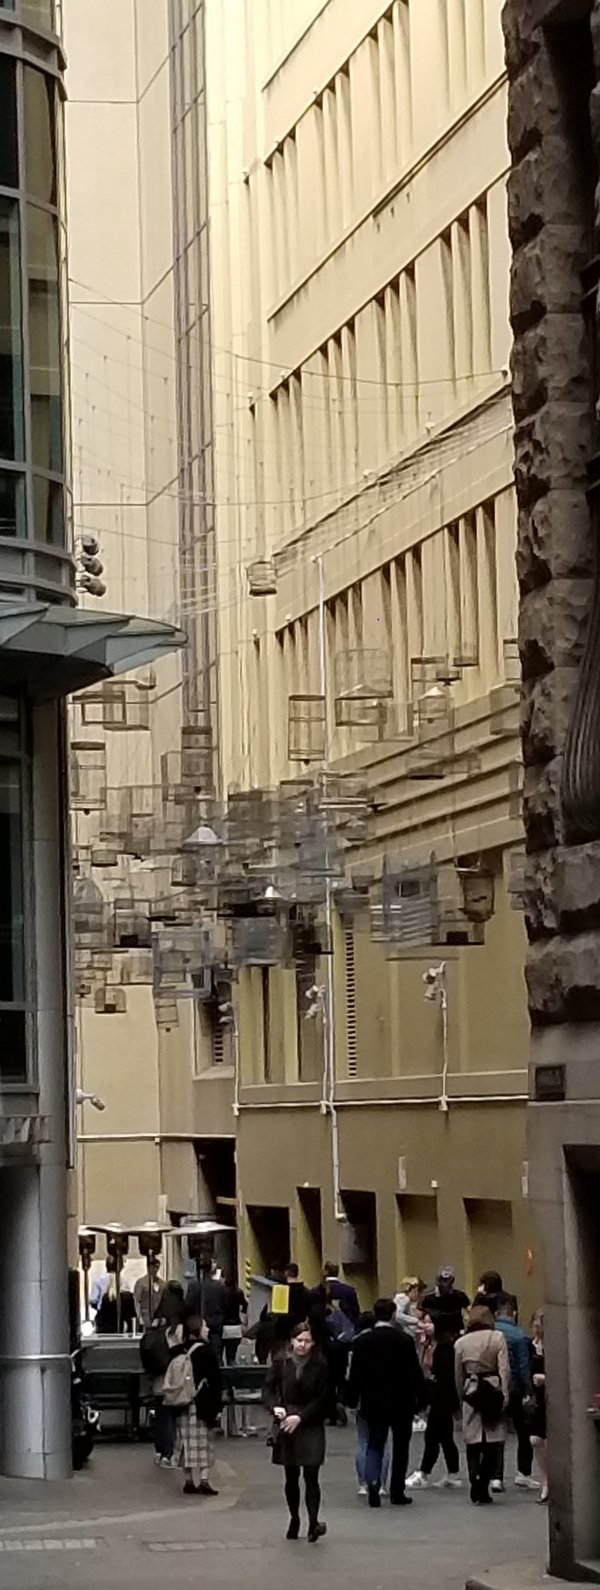 A Sydney, Australia city street with bird cages strung overhead thumbnail